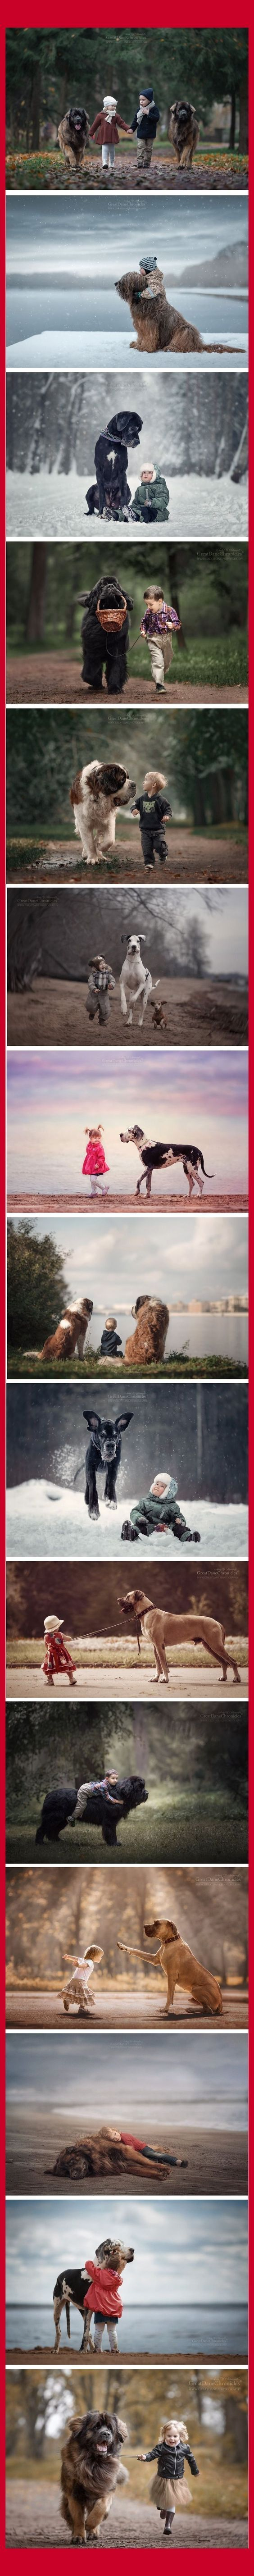 LITTLE KIDS BIG DOGS Photographer Andy Seliverstoff By James - Tiny children and their huge dogs photographed in adorable portraits by andy seliverstoff